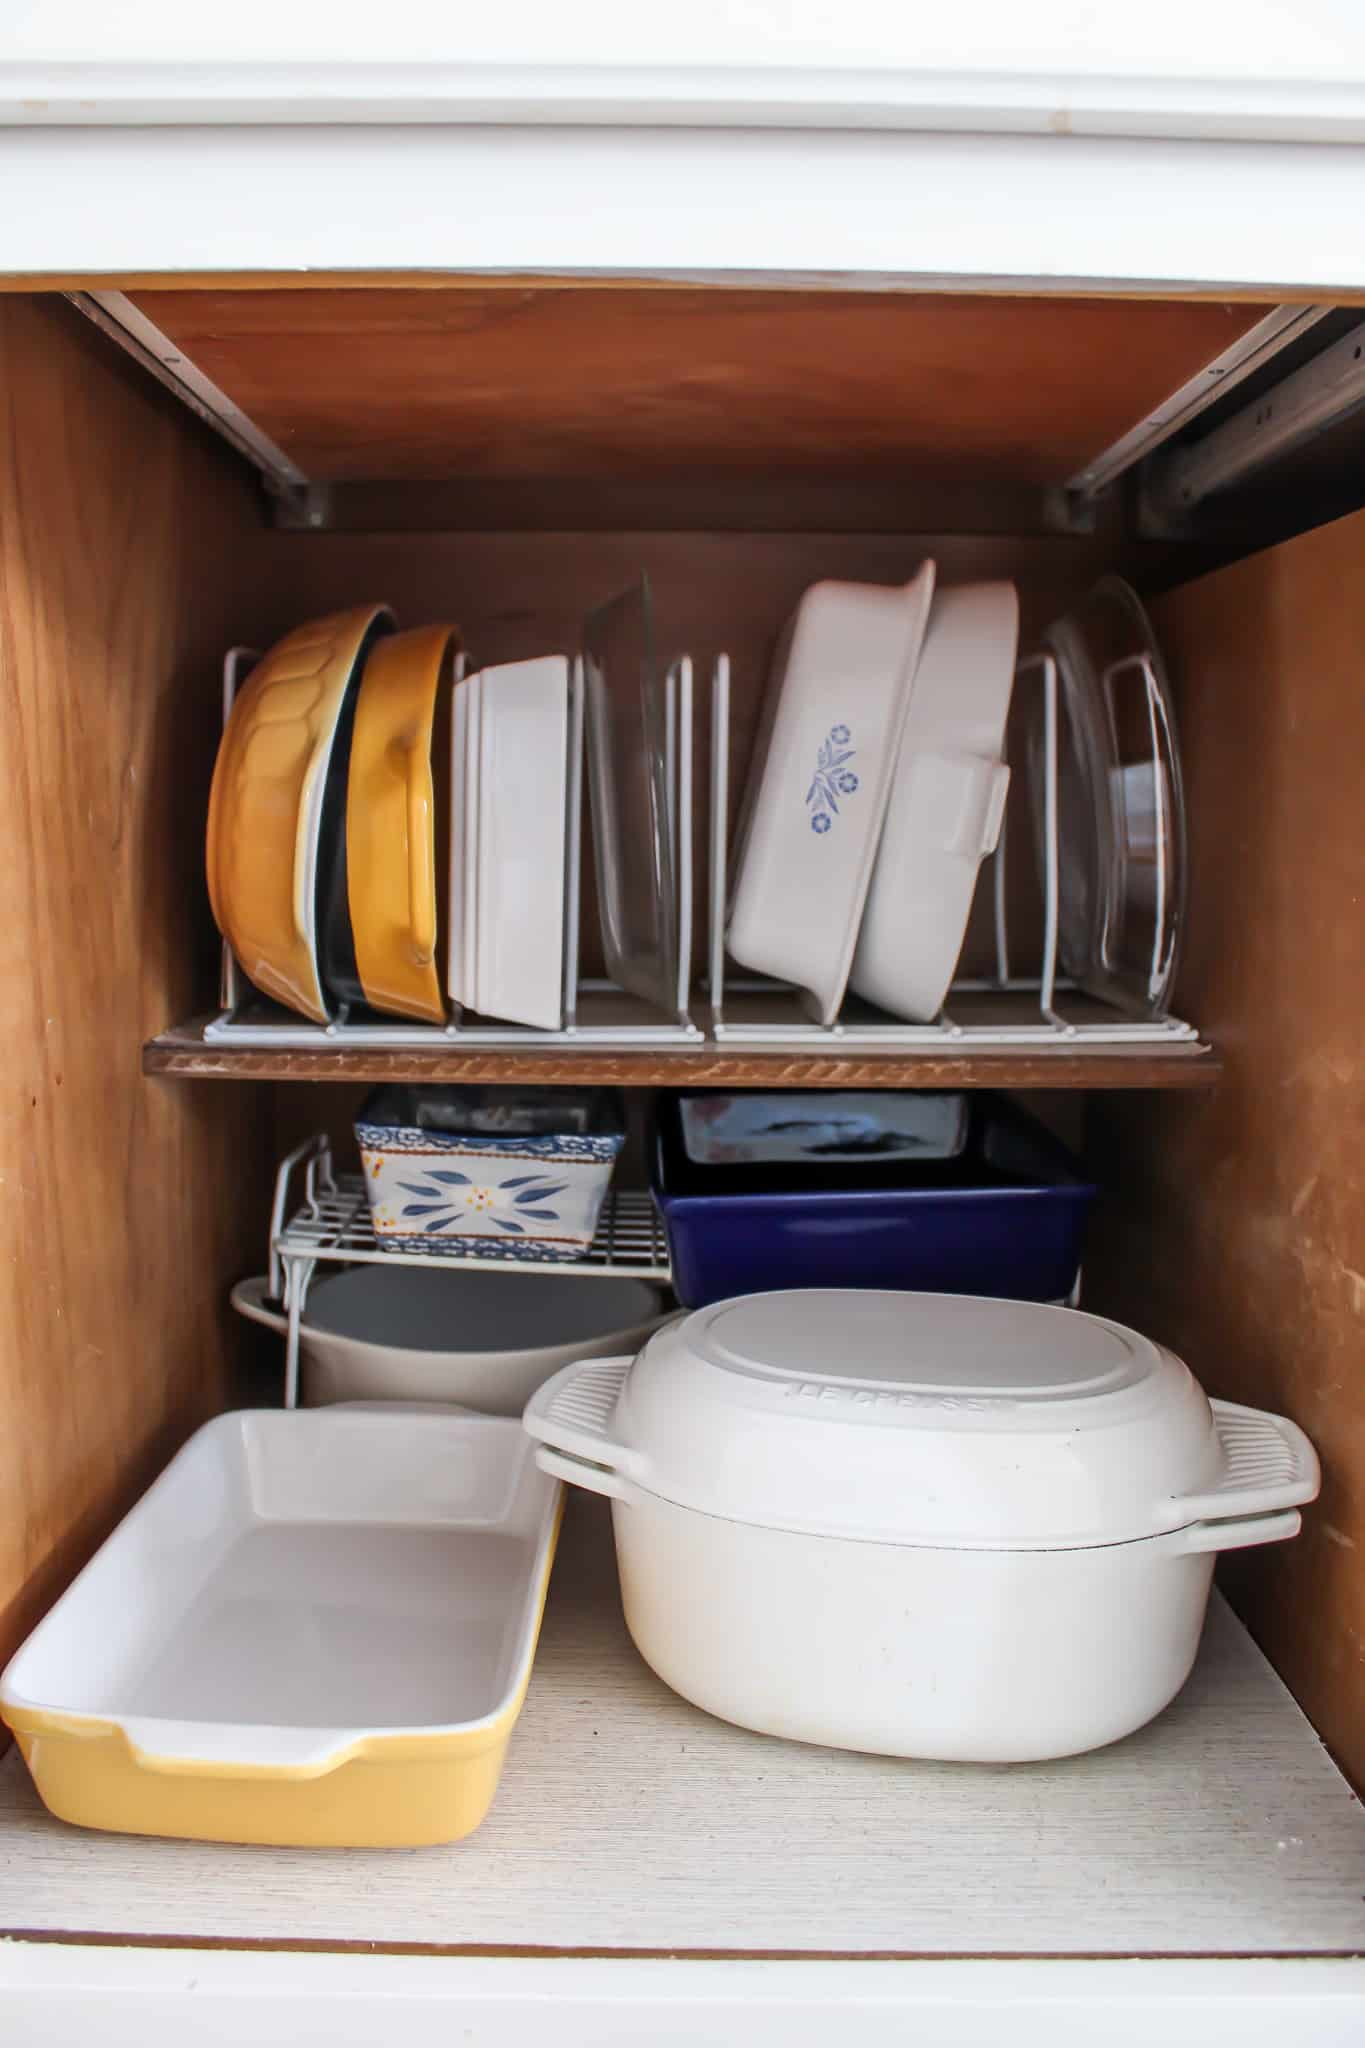 Make dishes easily accessible.